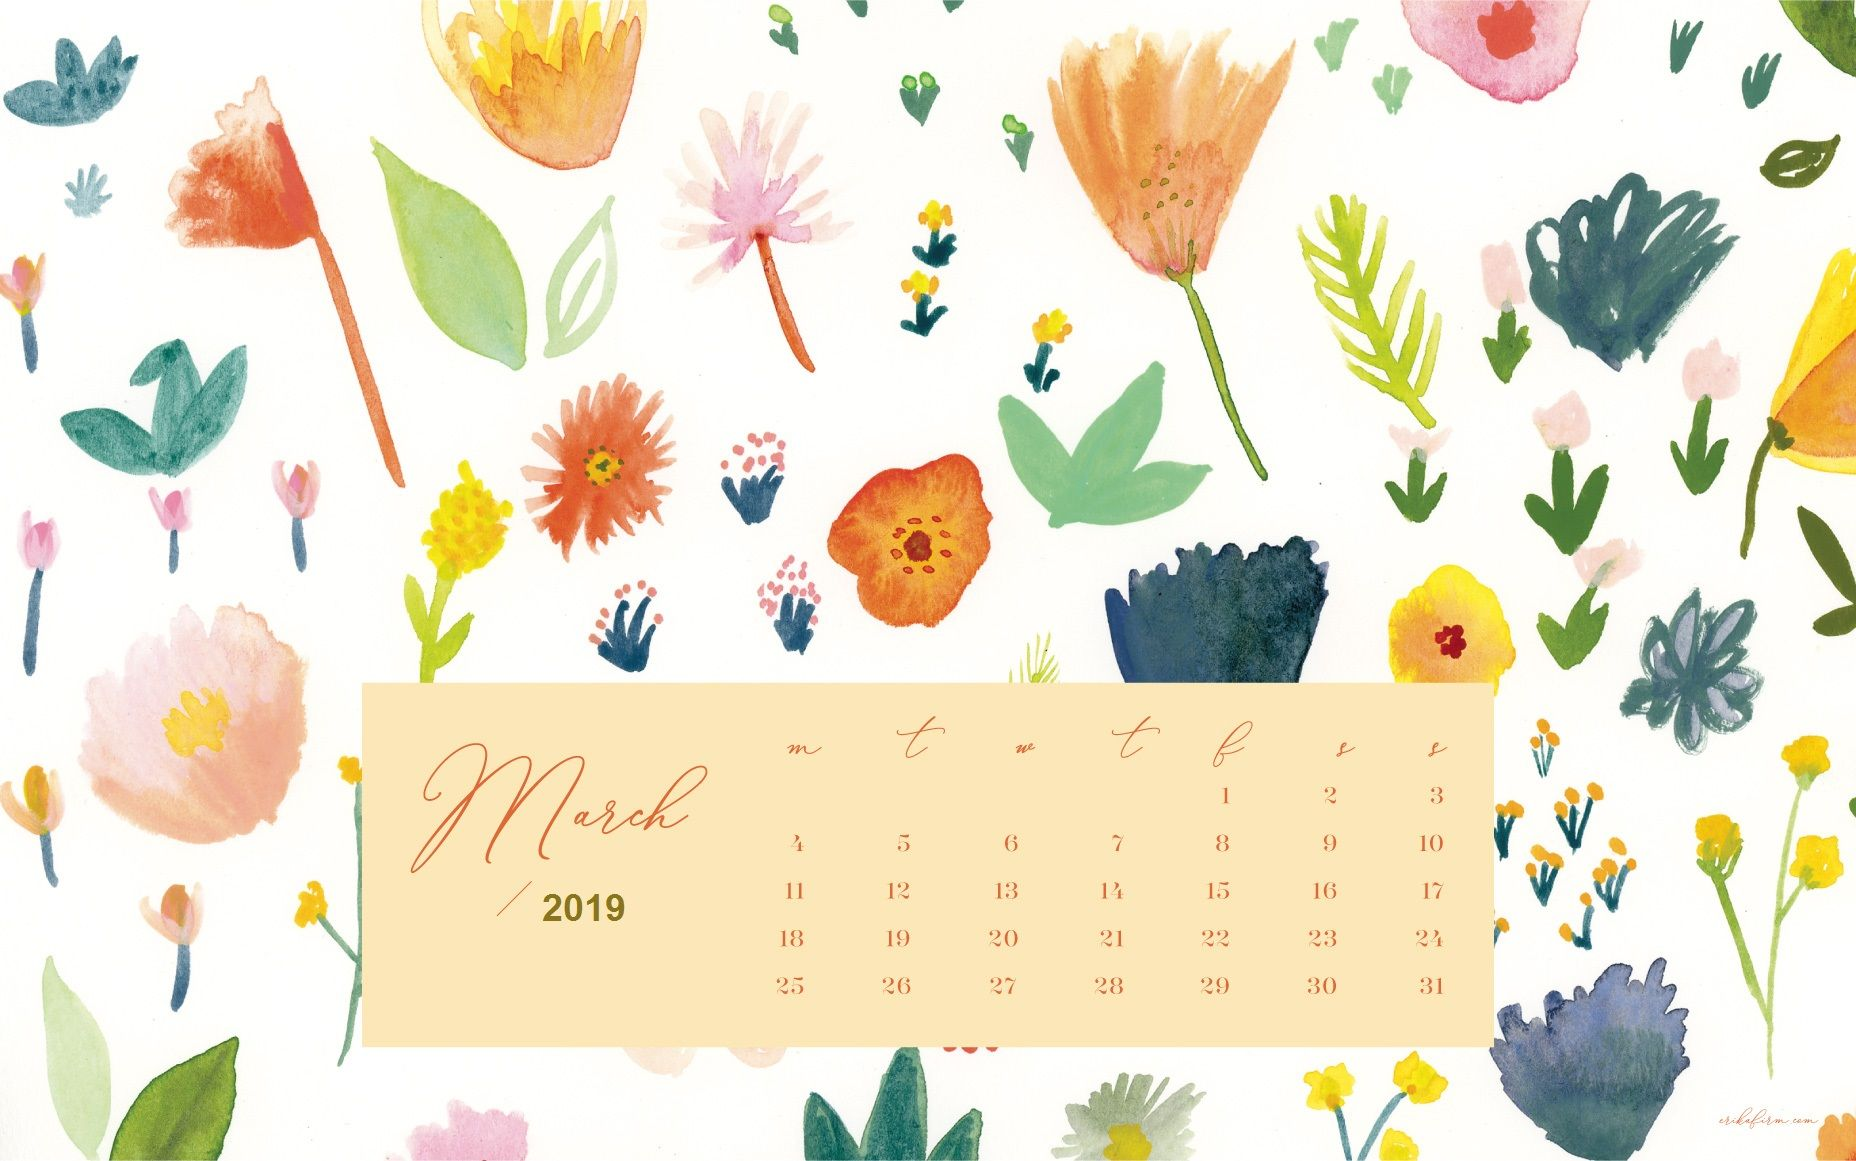 March 2019 Desktop Calendar Floral Background